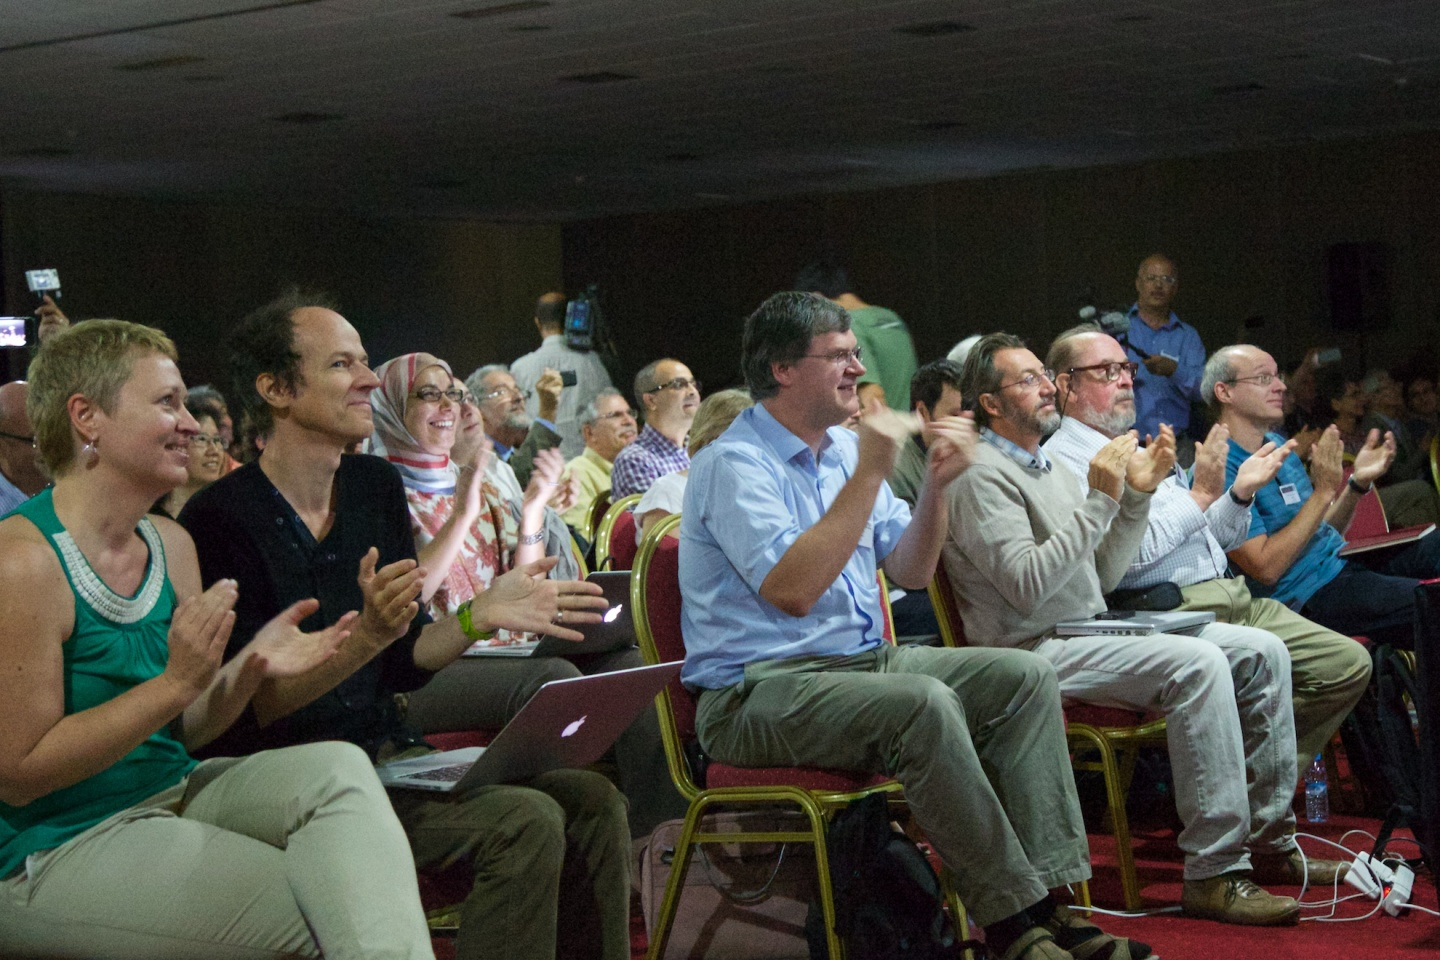 ATLAS,Nobel,Peter Higgs,Francois Englert,ATLAS week,Marrakech,2013,Collaborations,Portraits,Meetings & Seminars